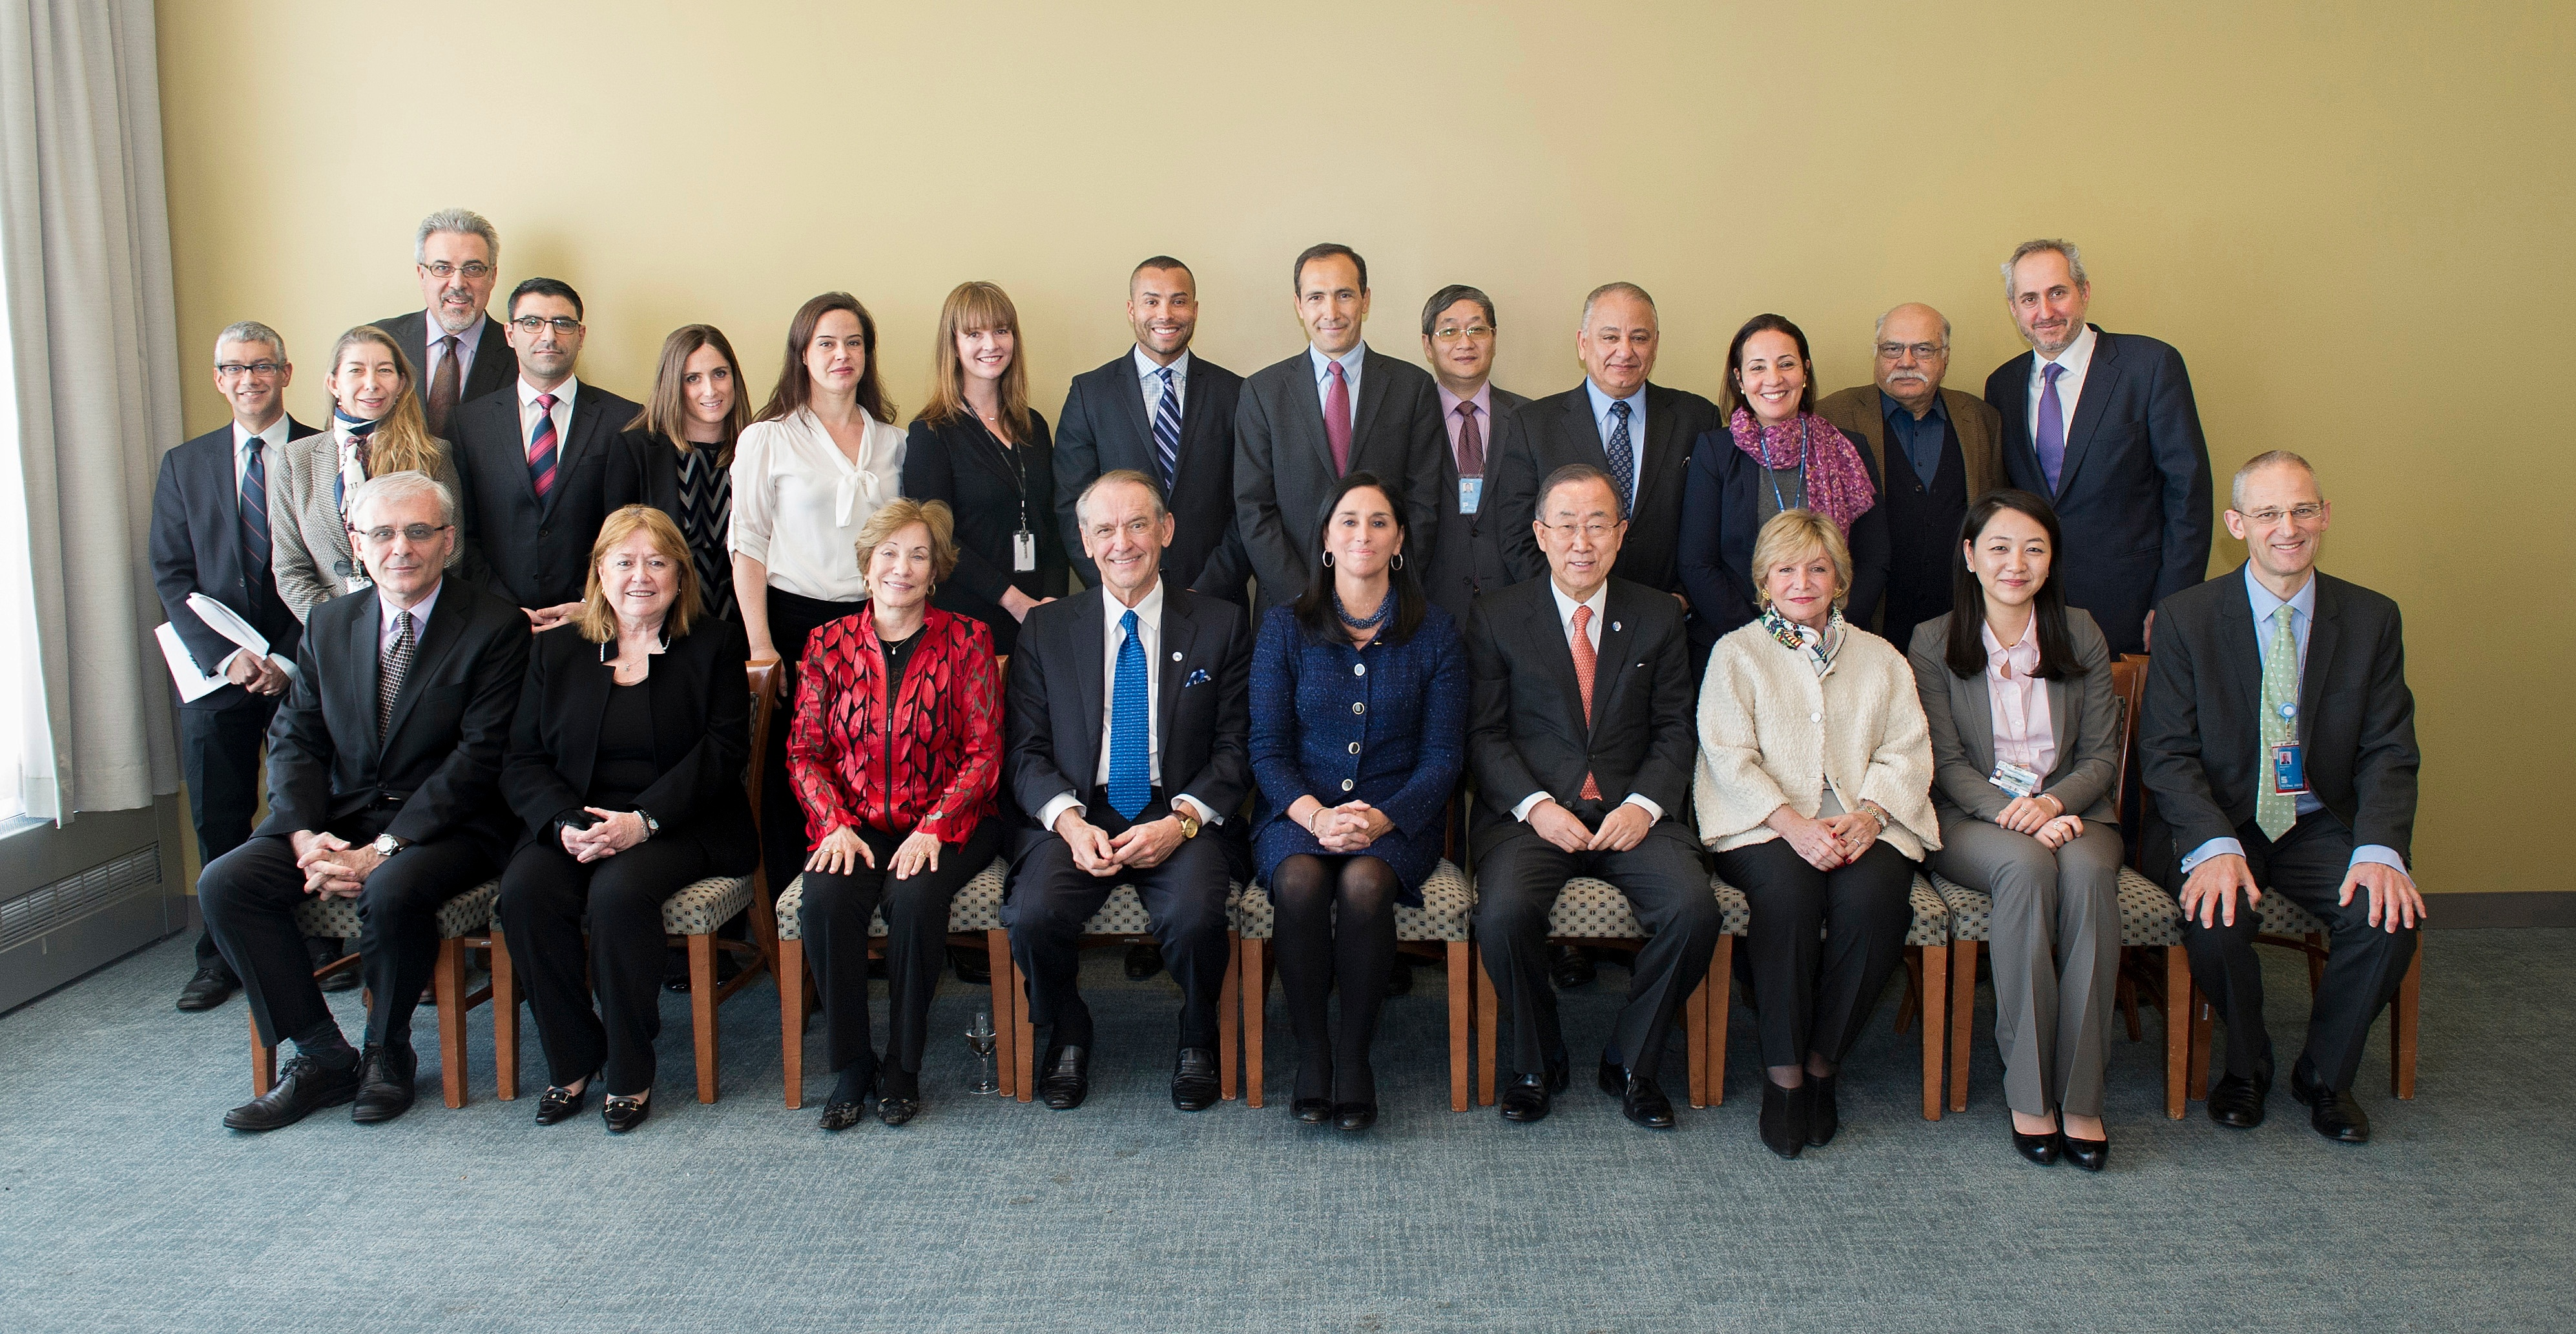 The 2014 UNCA Executive Committee with UN Secretary General (group photo)